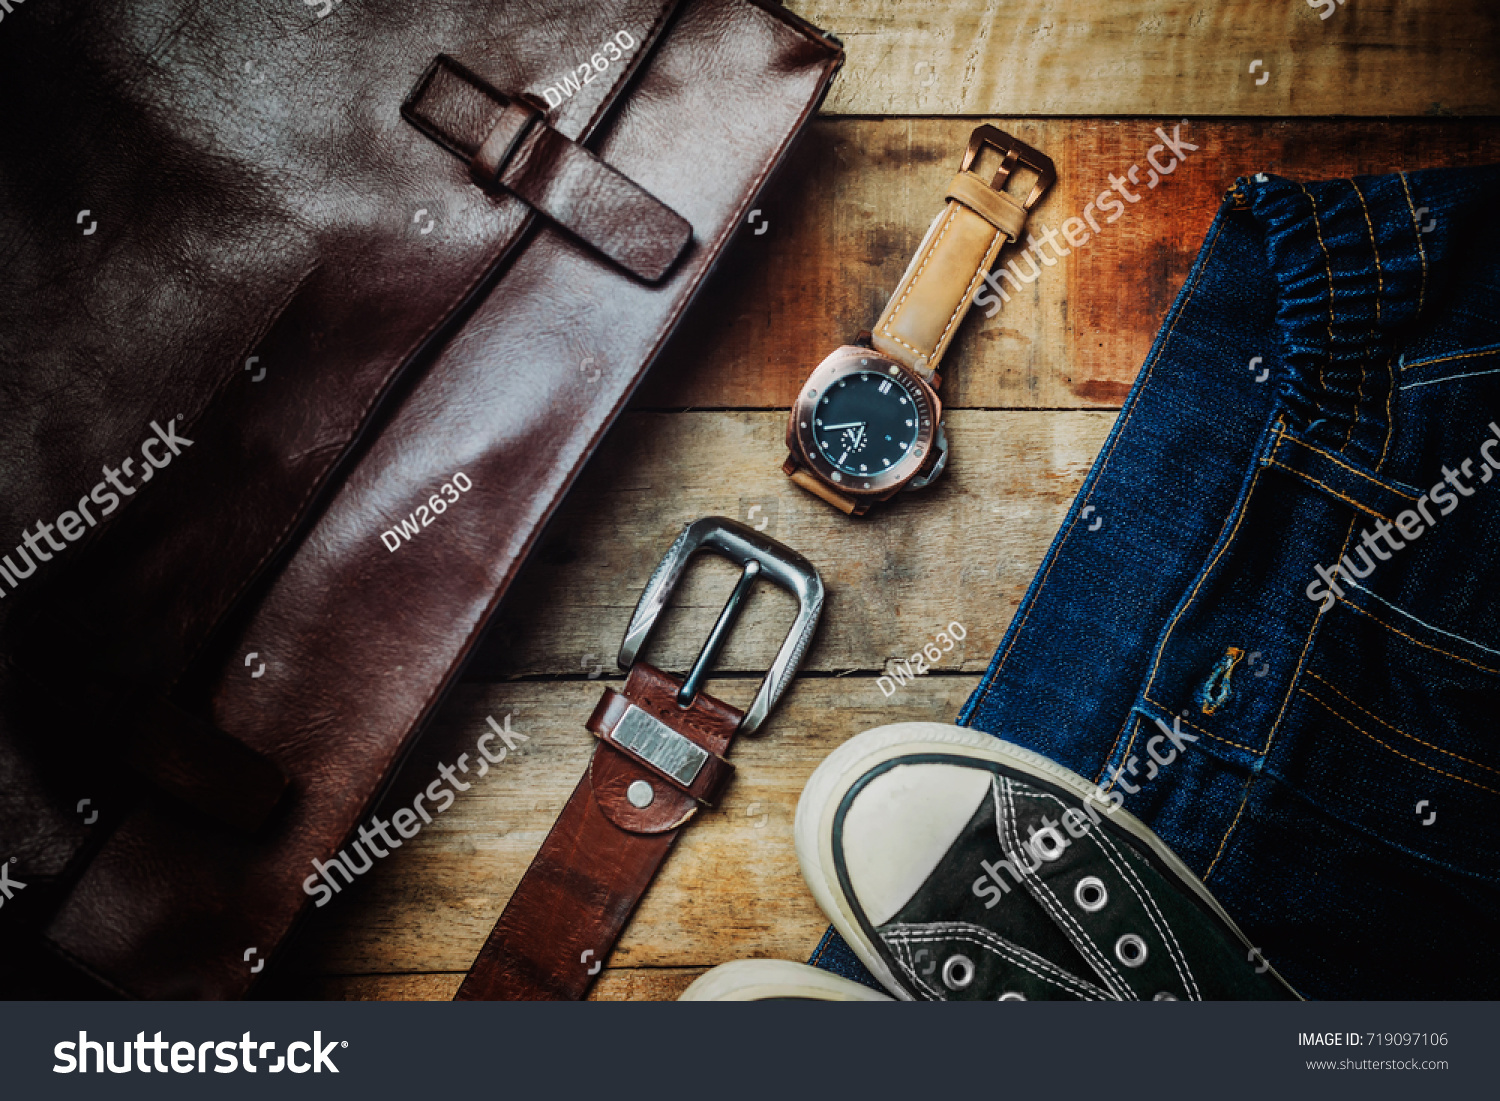 614e94f0 Men's Travel accessories plane travel Clothing accessories Apparel along  for the trip.